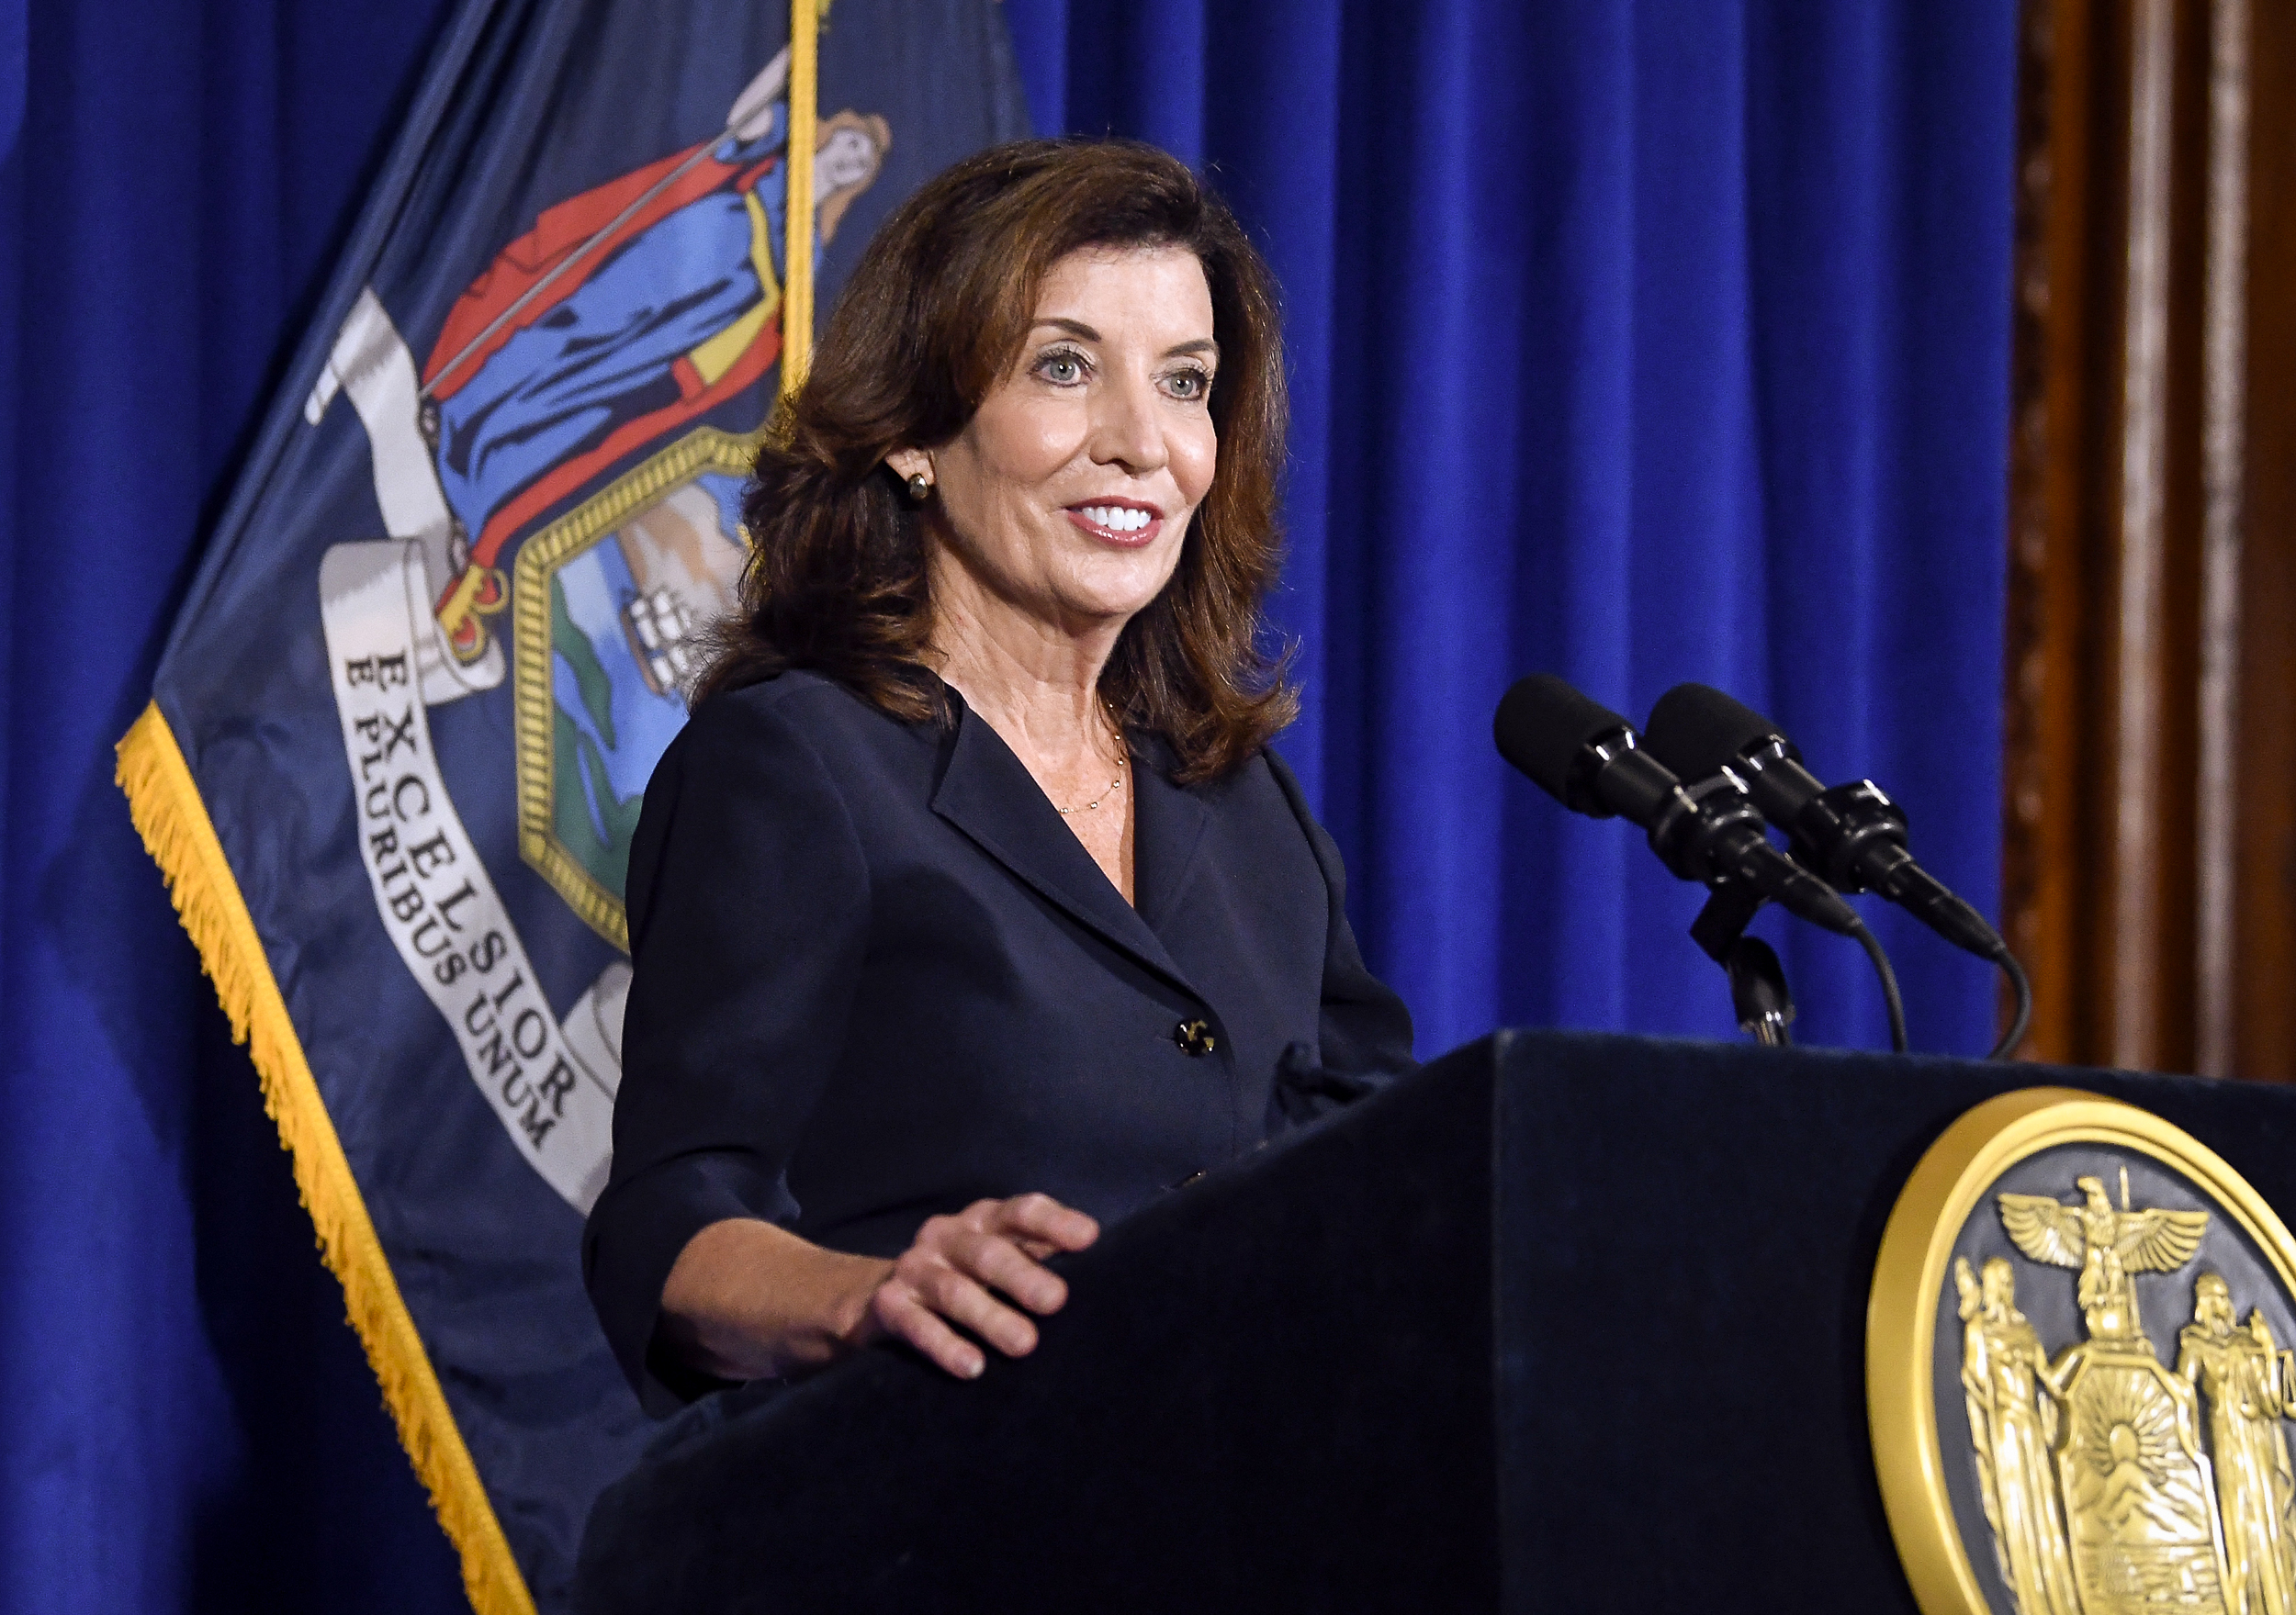 Cuomo successor Kathy Hochul assures New Yorkers: 'I will fight like hell for you'